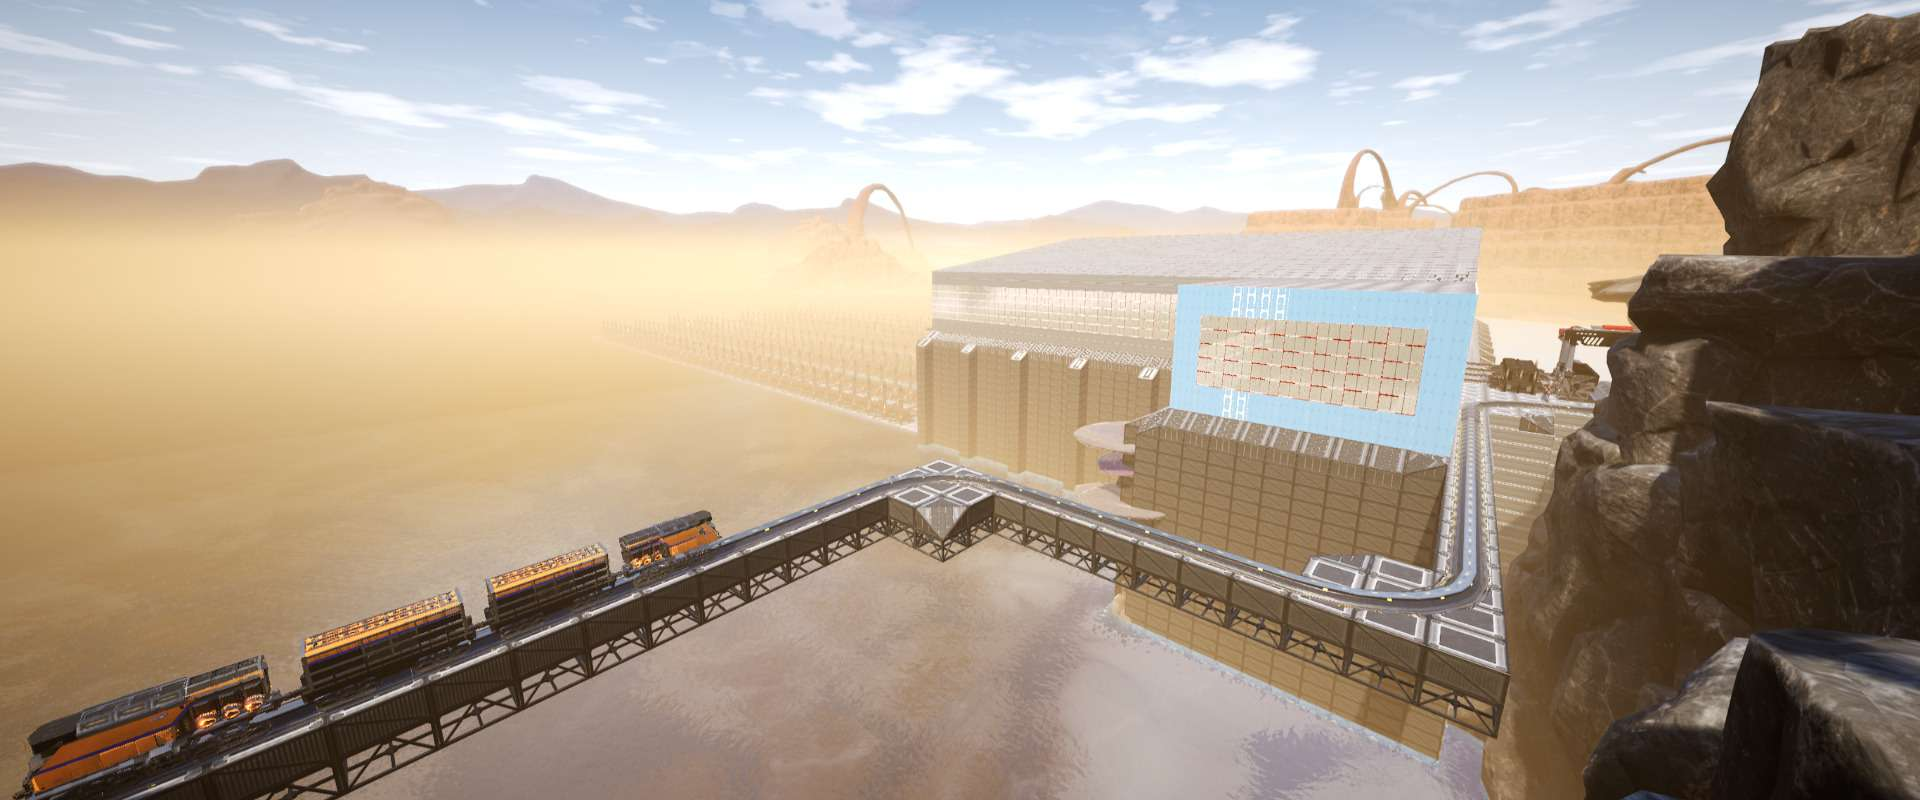 TurboFuel Powerplant , 44444.4MW from 600 Crude Oil Fully working// **EDITED TO BE MORE EFFICIENT **